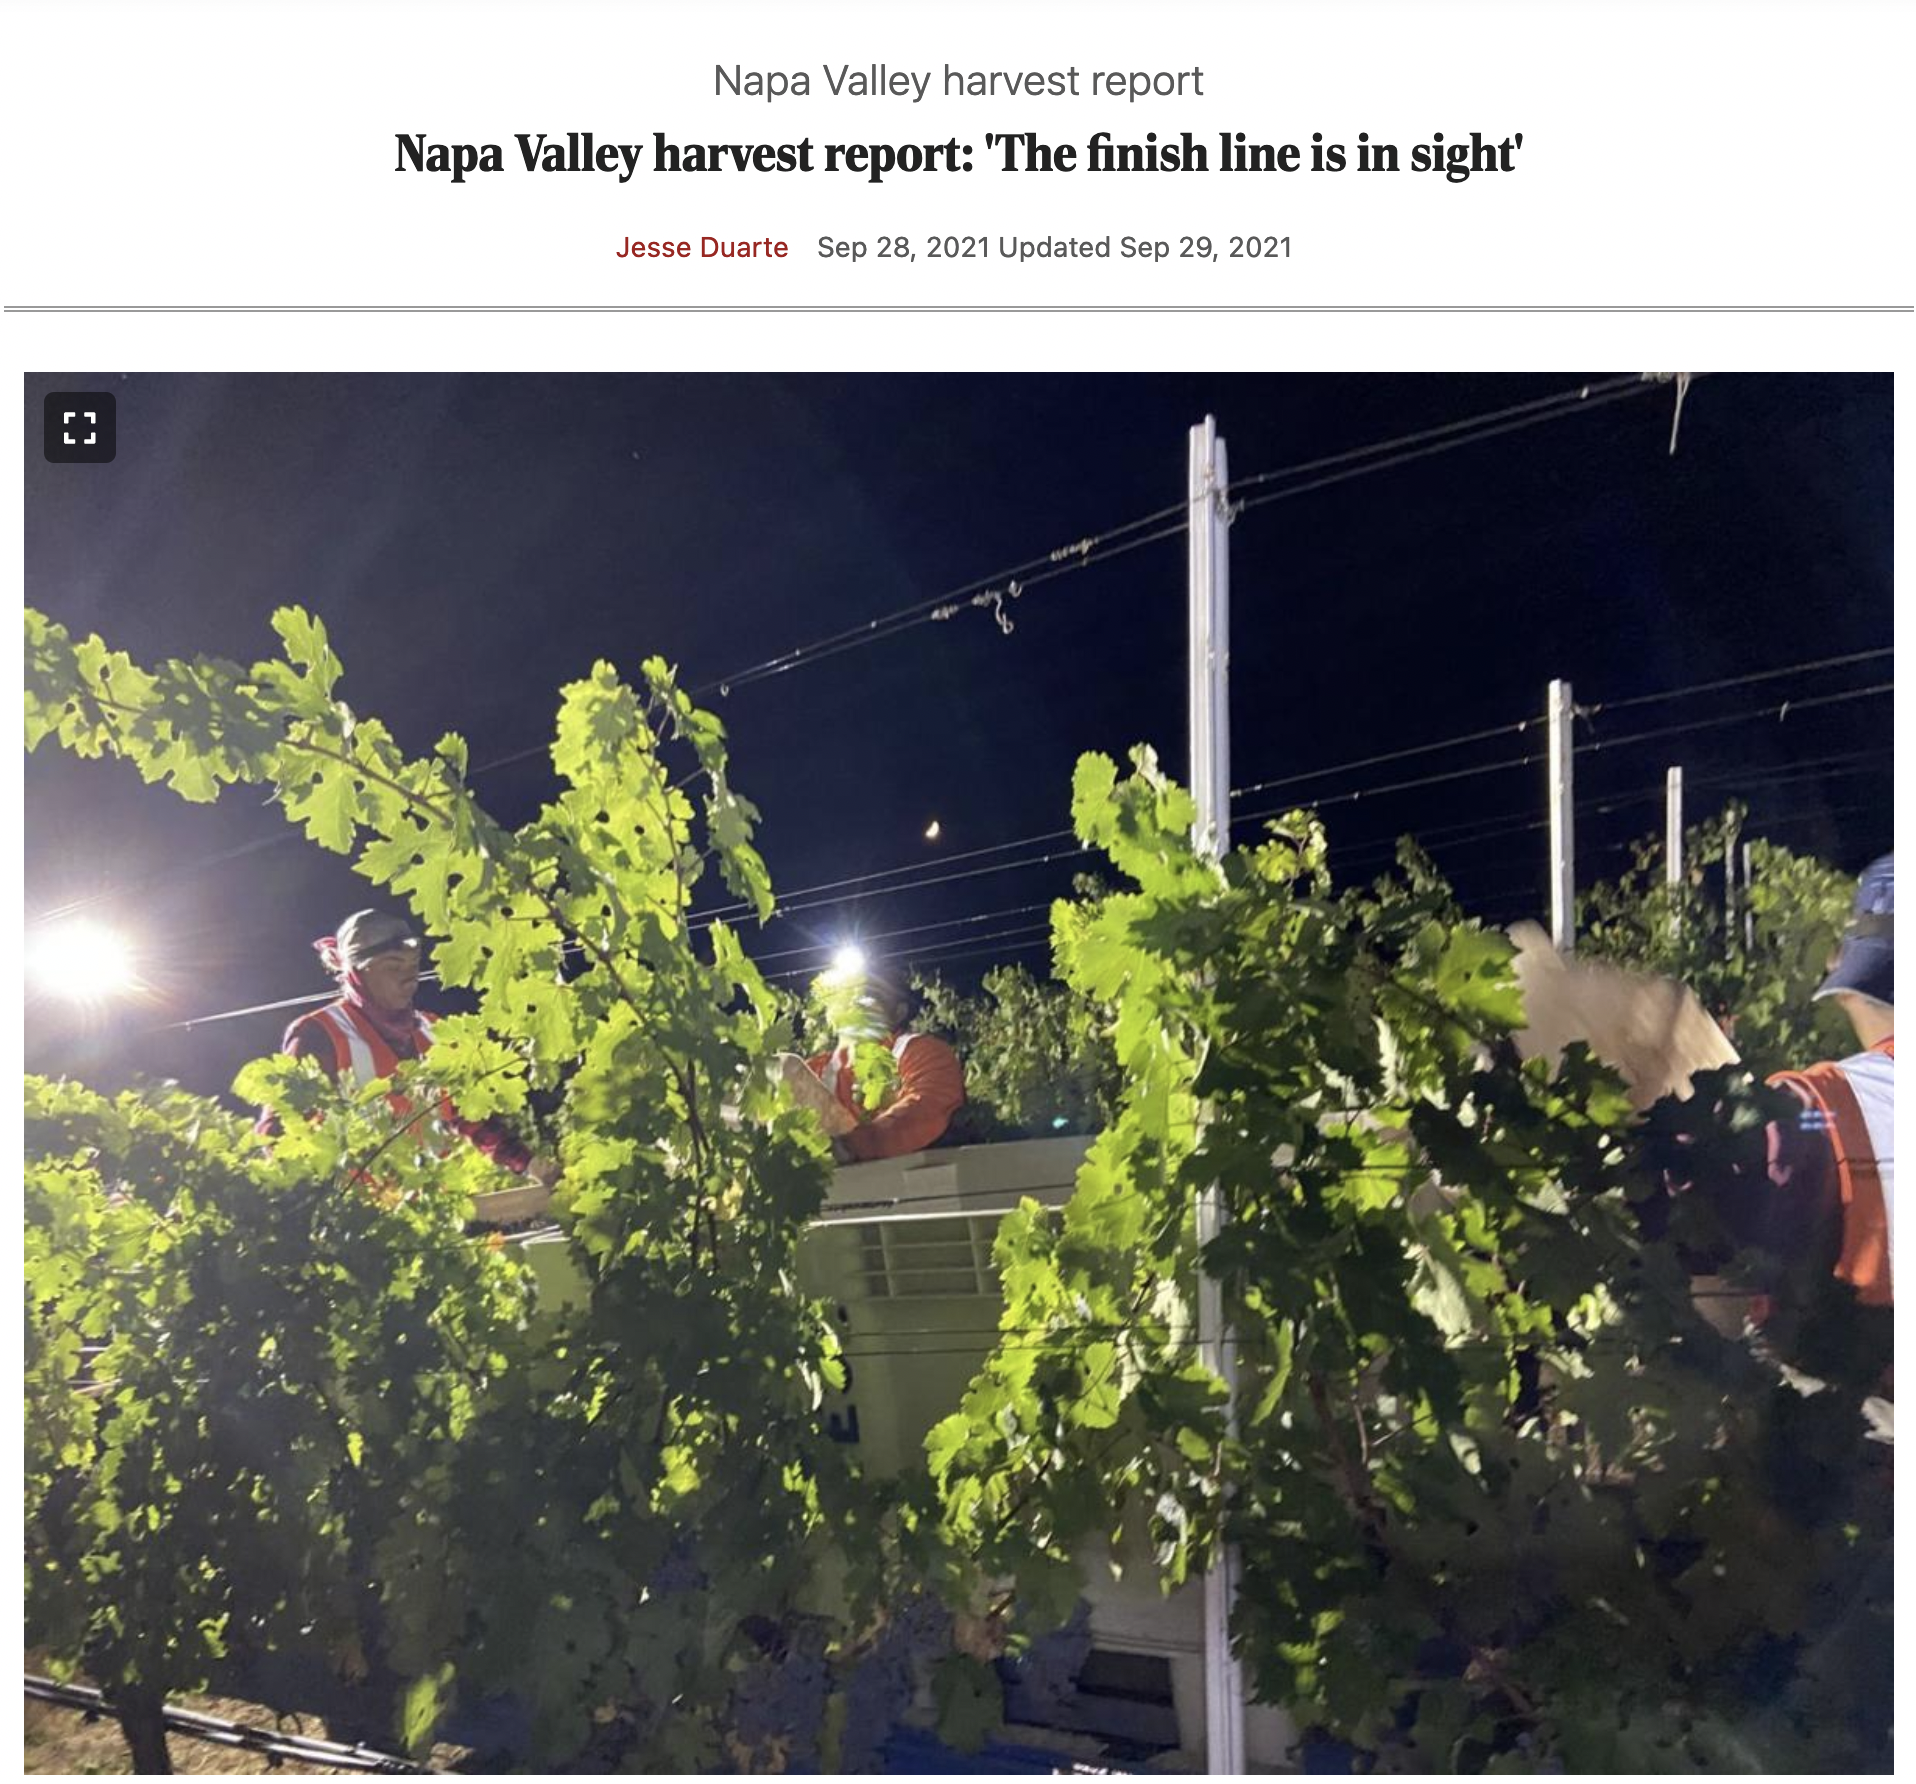 Napa Valley harvest report: 'The finish line is in sight' by Jesse Duarte